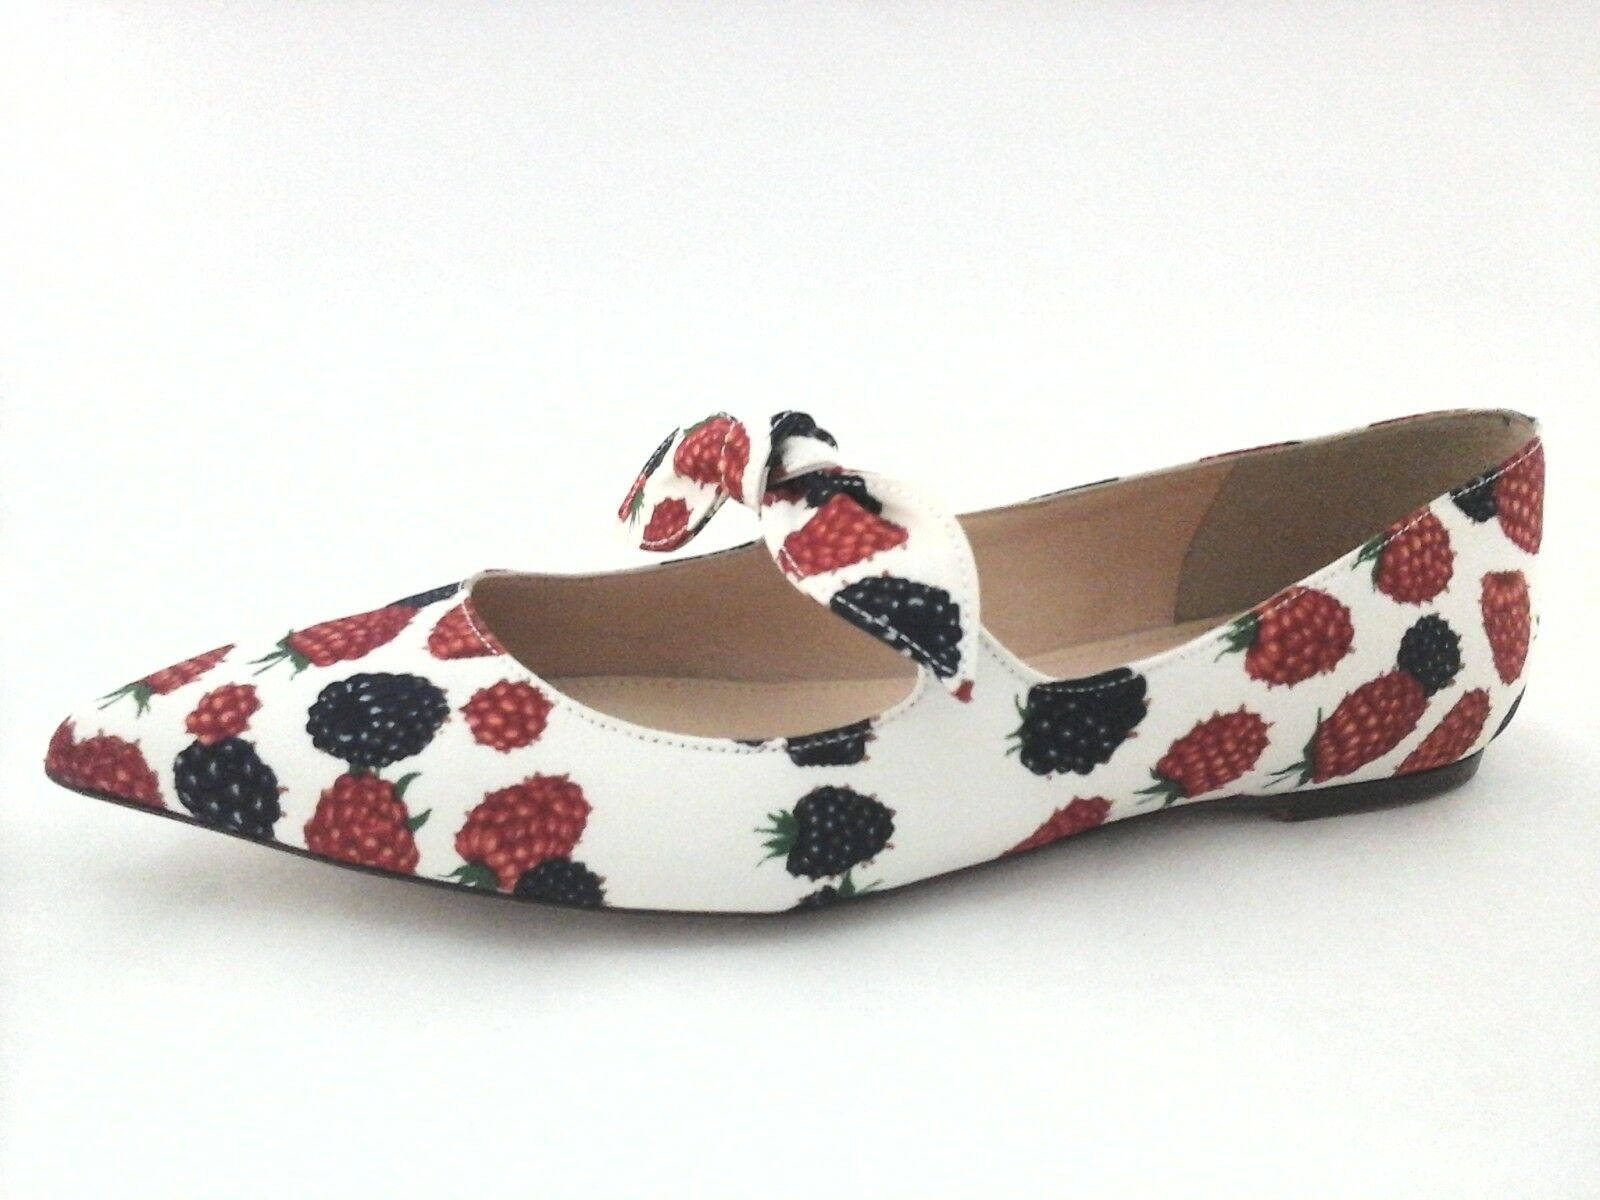 JCREW Flats Berry Print Ivory Multi Pointy chaussures G0924 femmes US 7.5 38  148 New